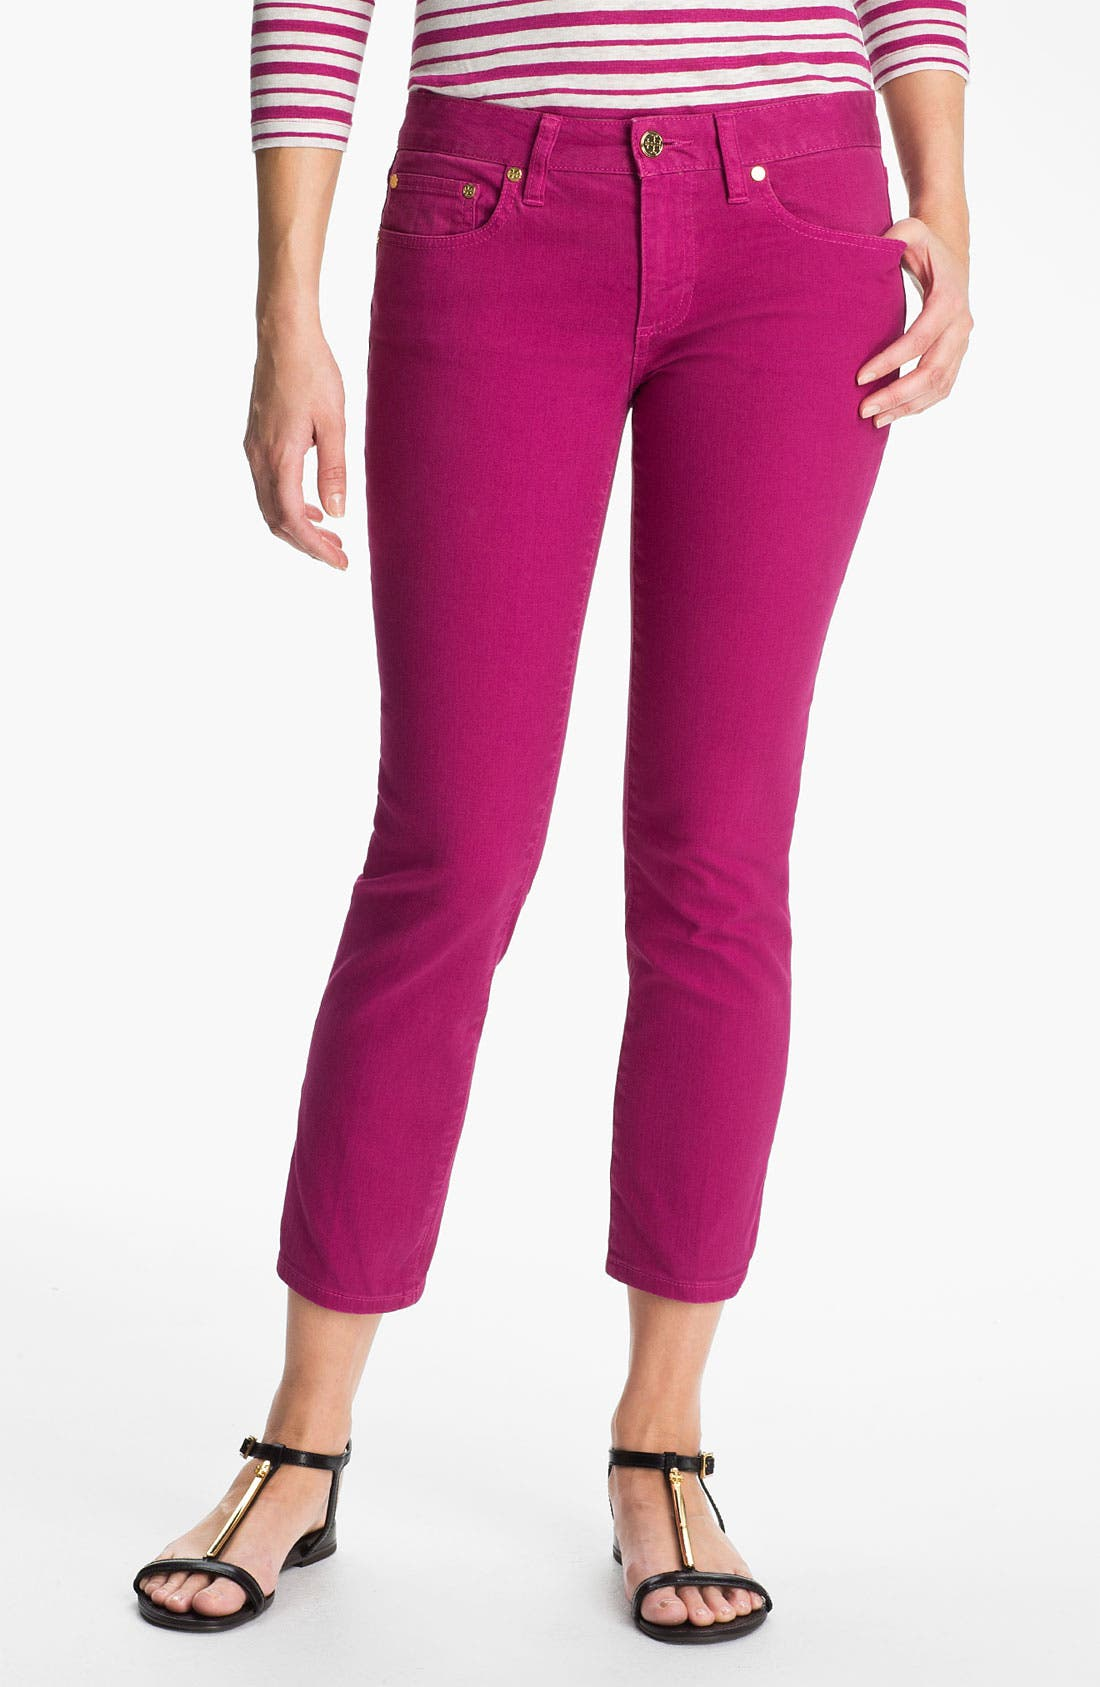 Alternate Image 1 Selected - Tory Burch 'Alexia' Crop Skinny Stretch Jeans